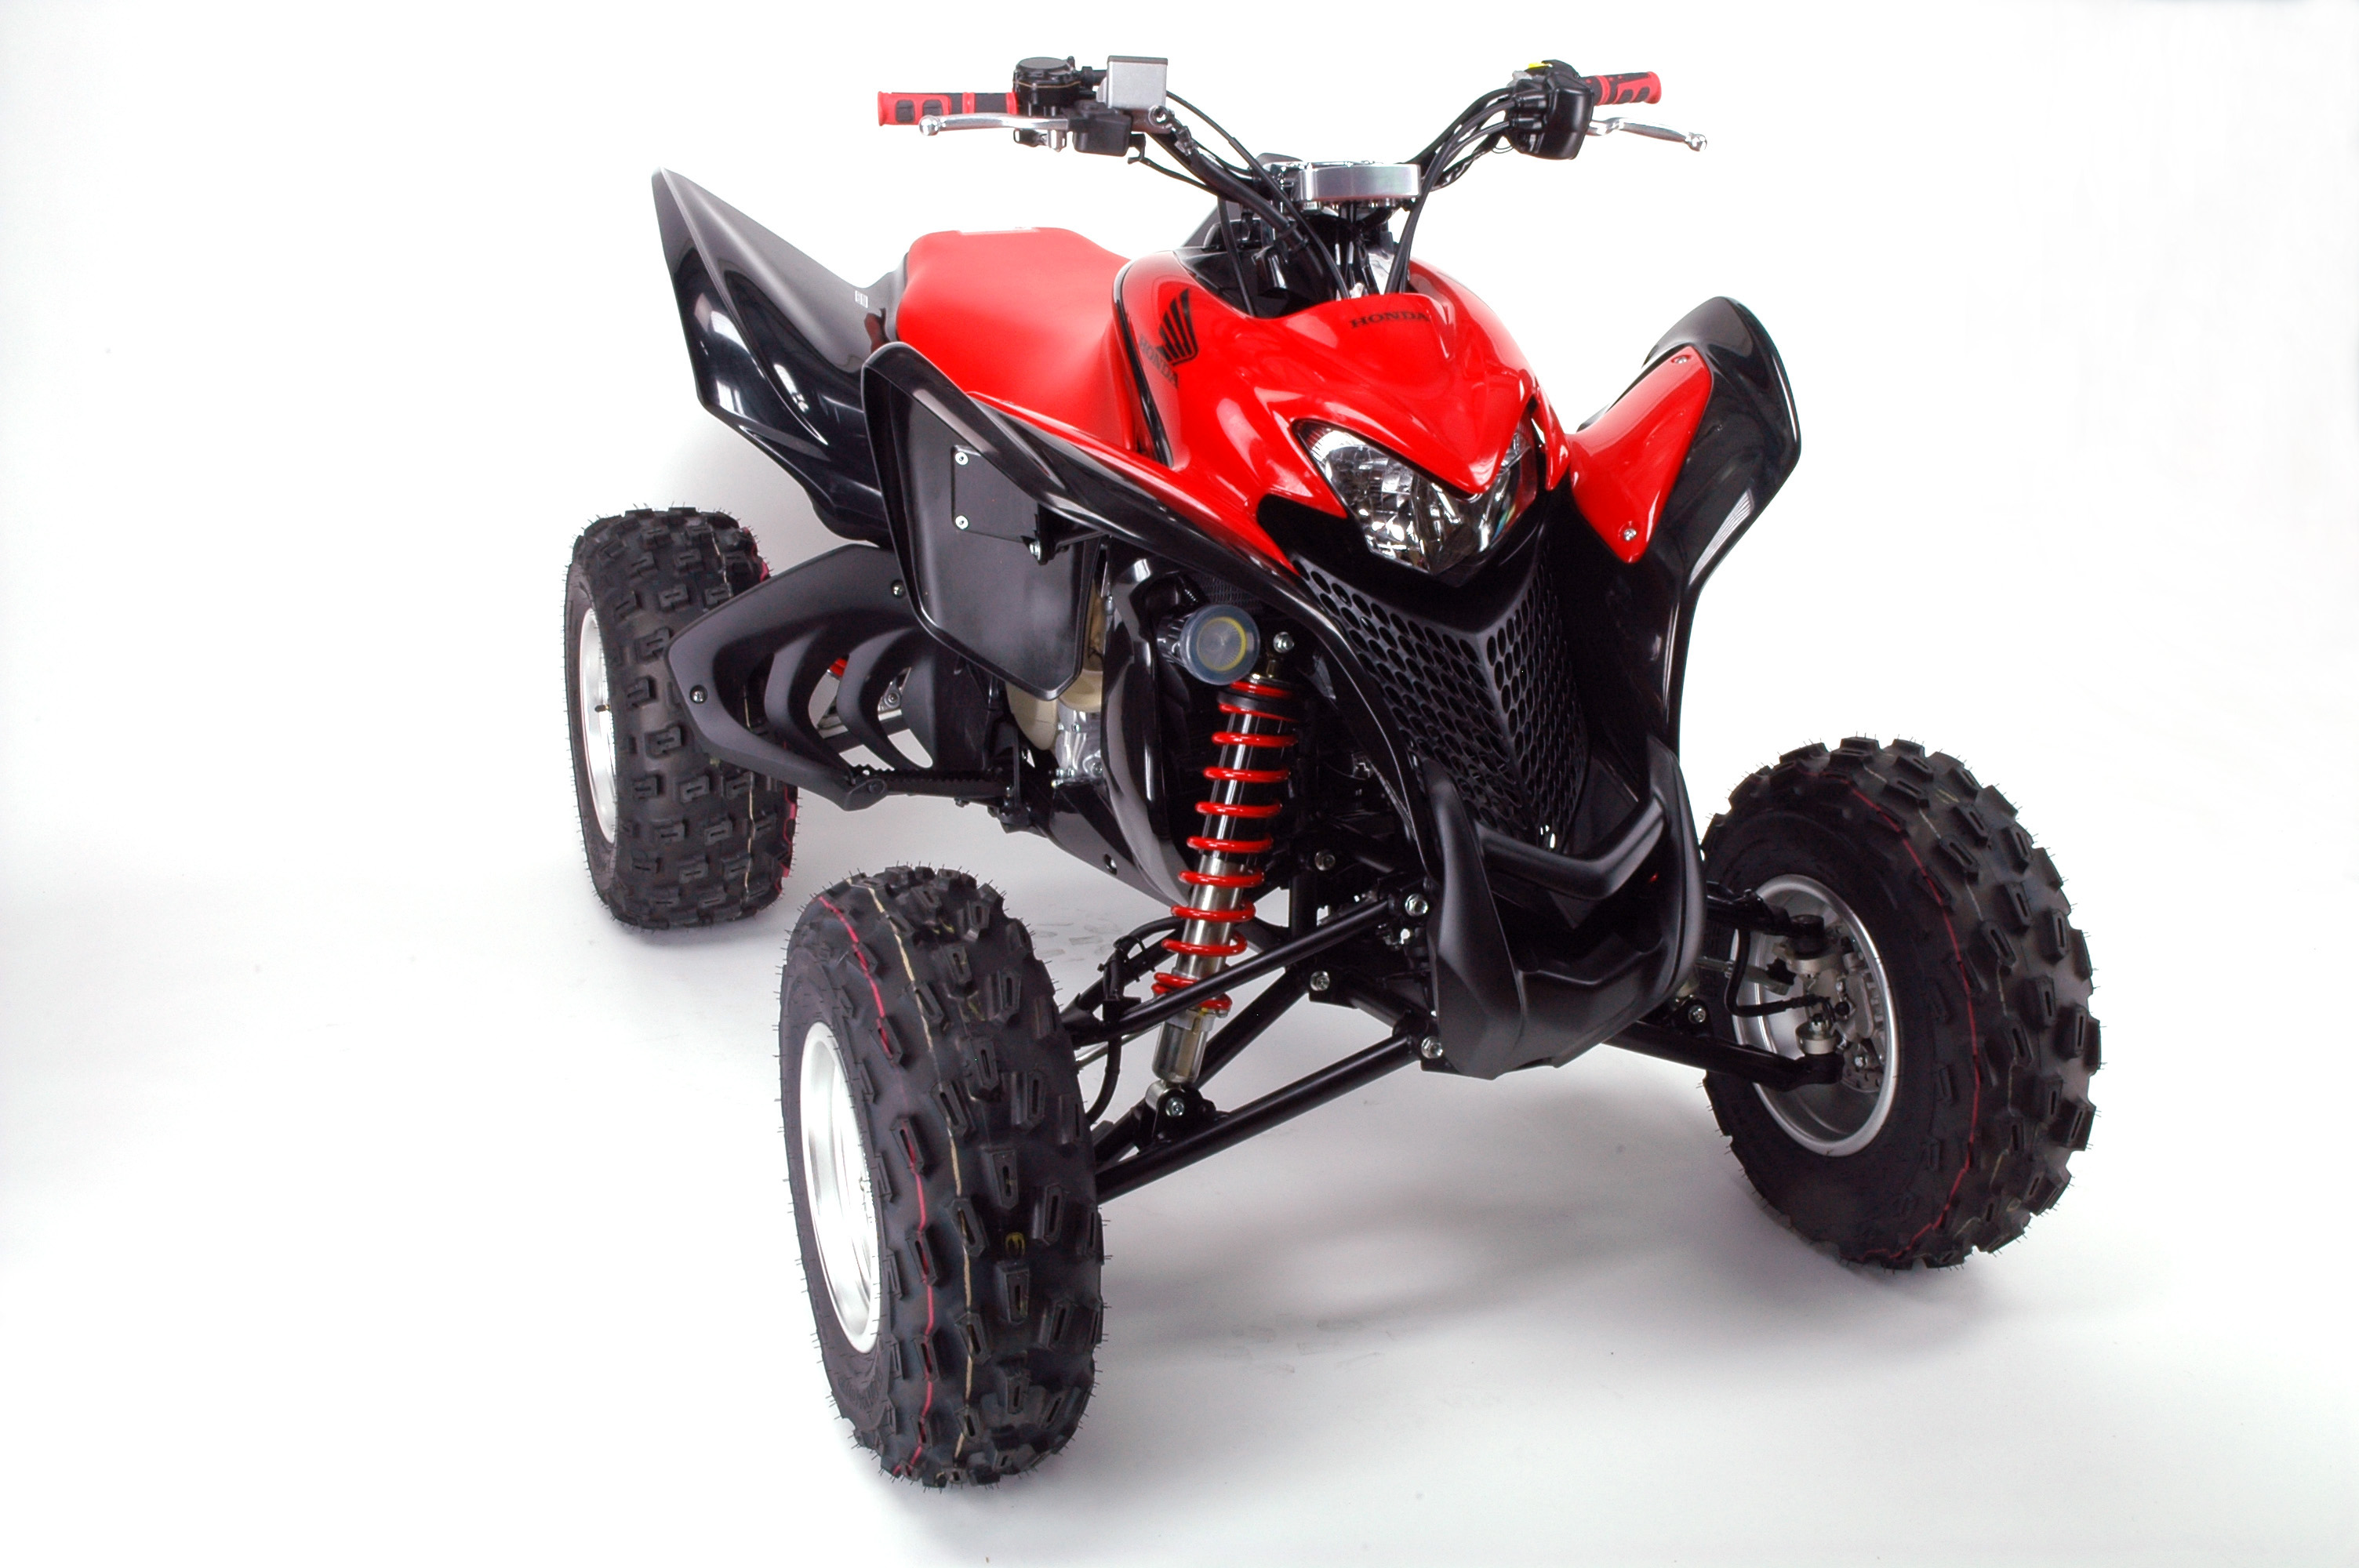 Photo :: TRX 700XX 2008